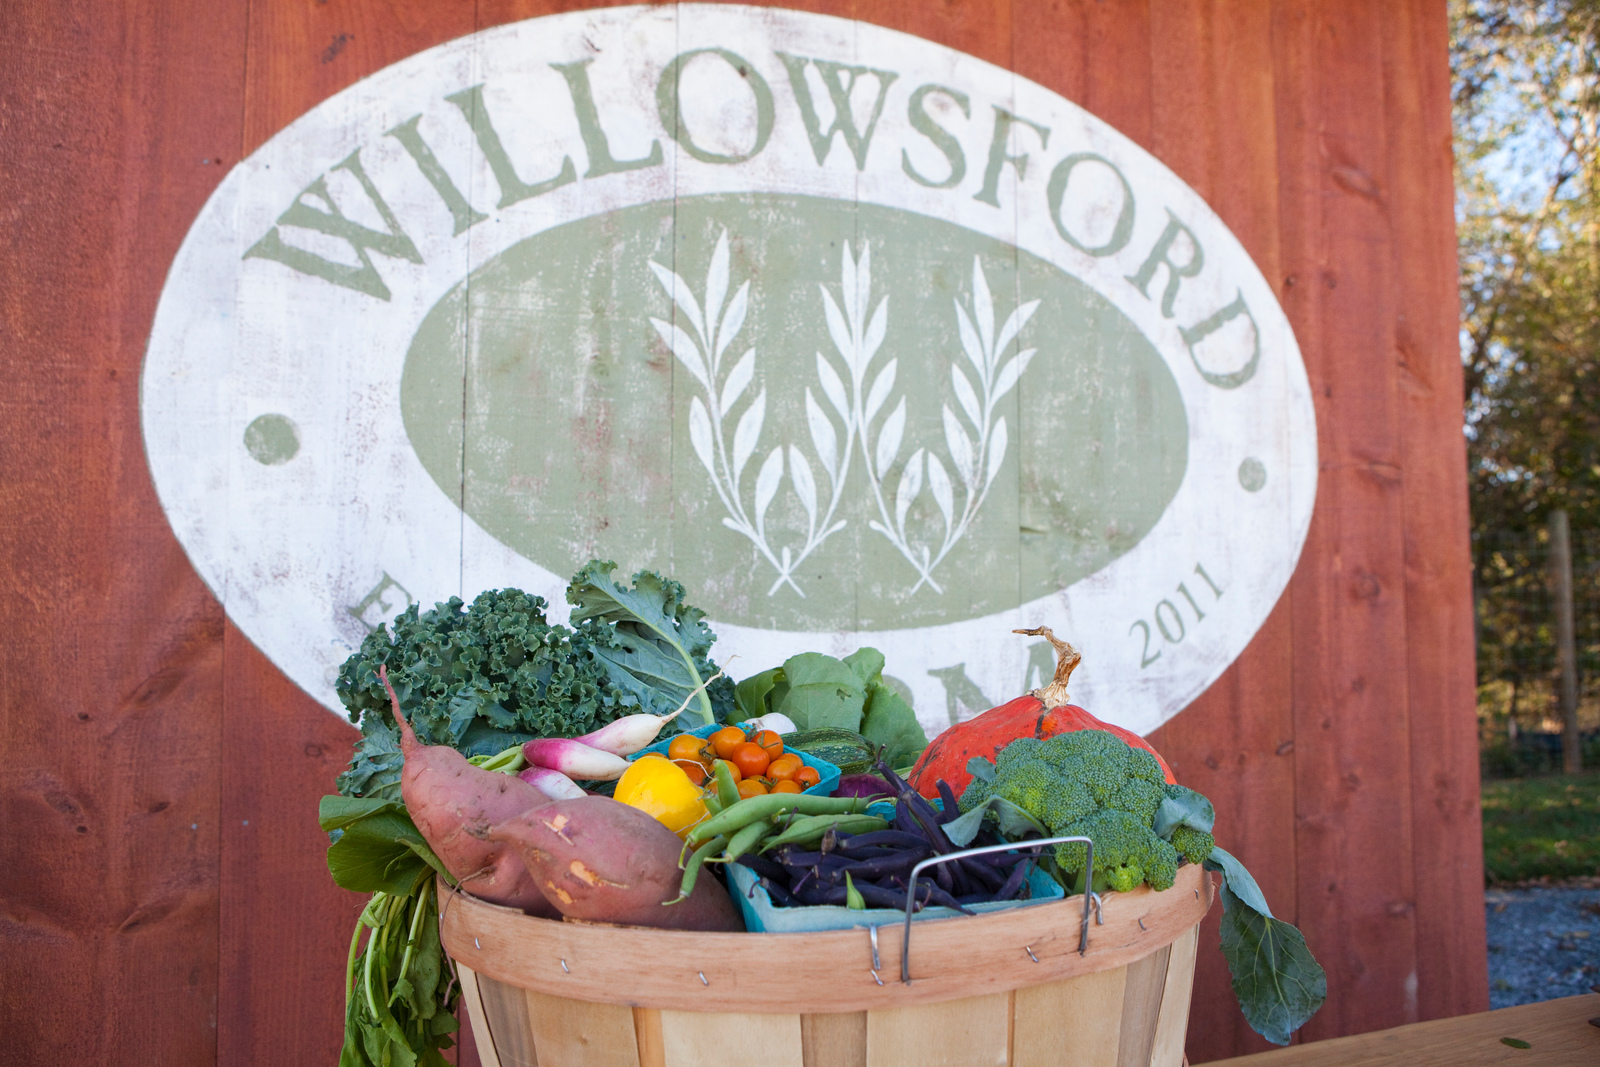 Enjoy over 300 acres with over 100 varieties of fruits and vegetables at Willowsford.